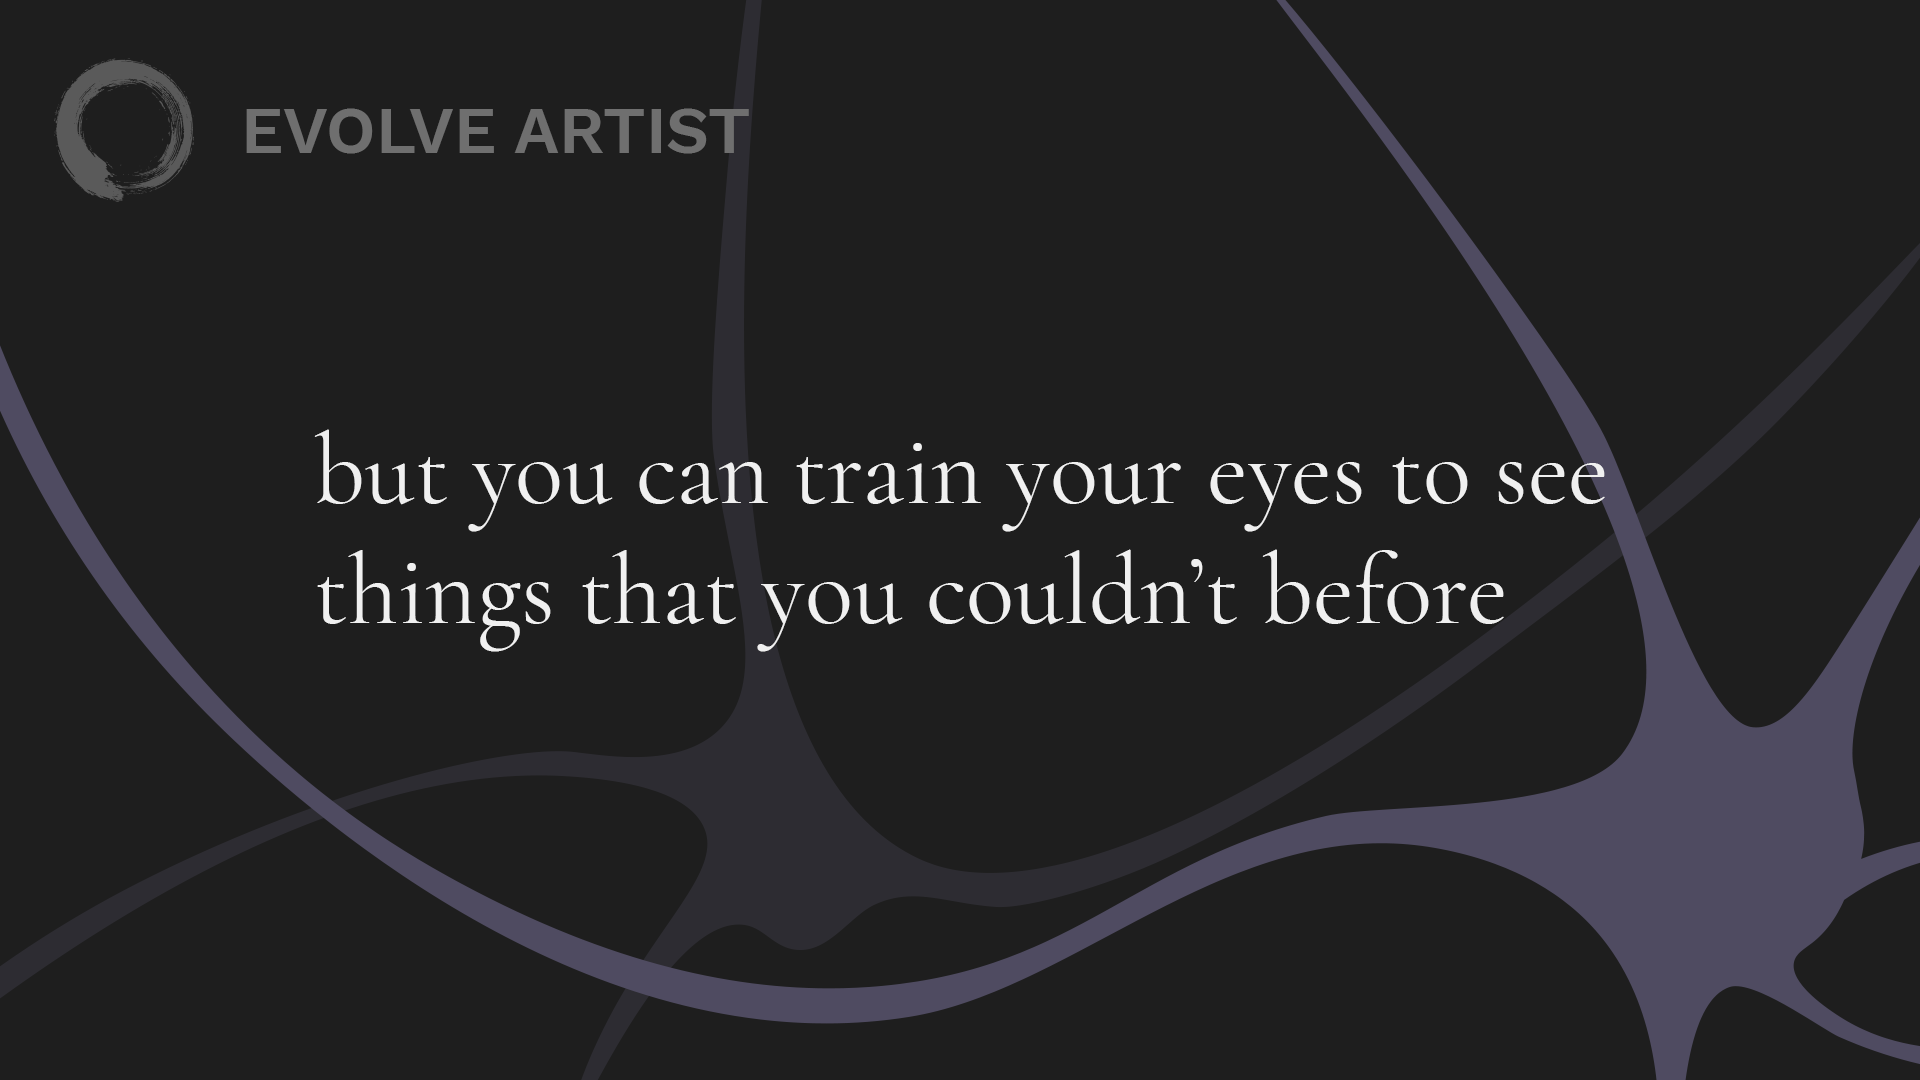 You can develop neural pathways to learn how to see things you couldn't see before.